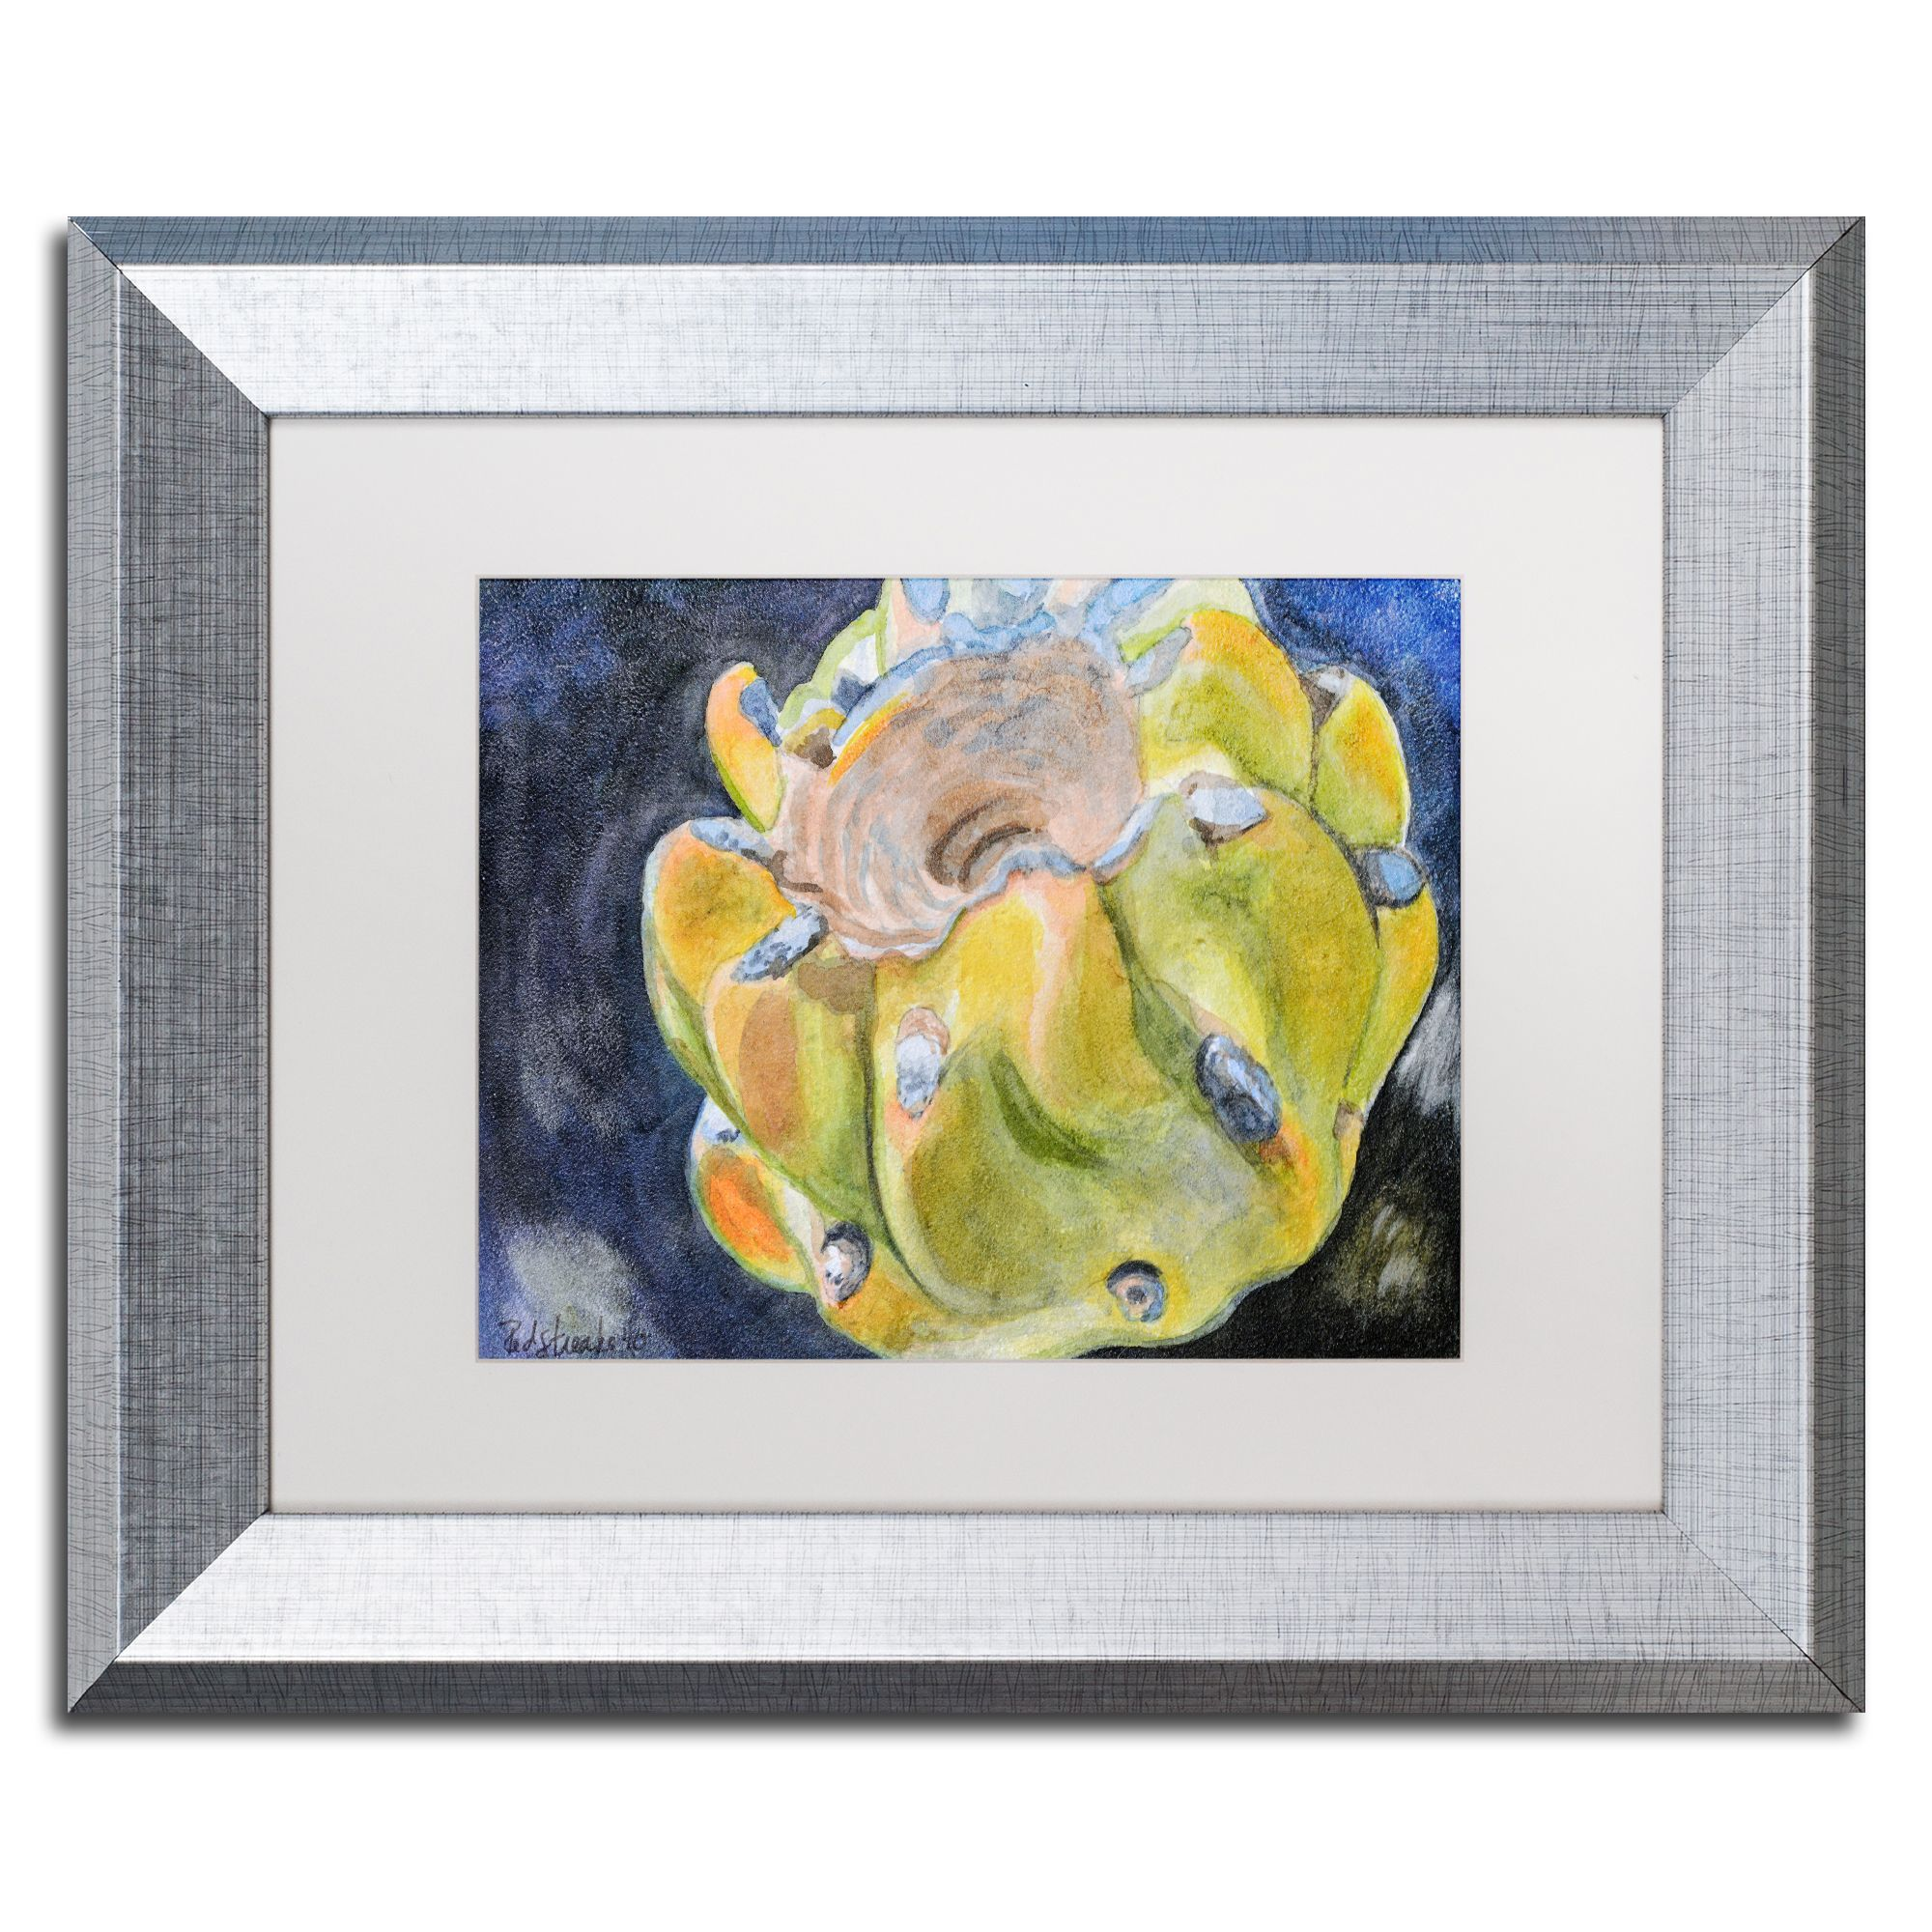 Jennifer Redstreake \'Cactus Fruit\' Matted Framed Art | Products ...